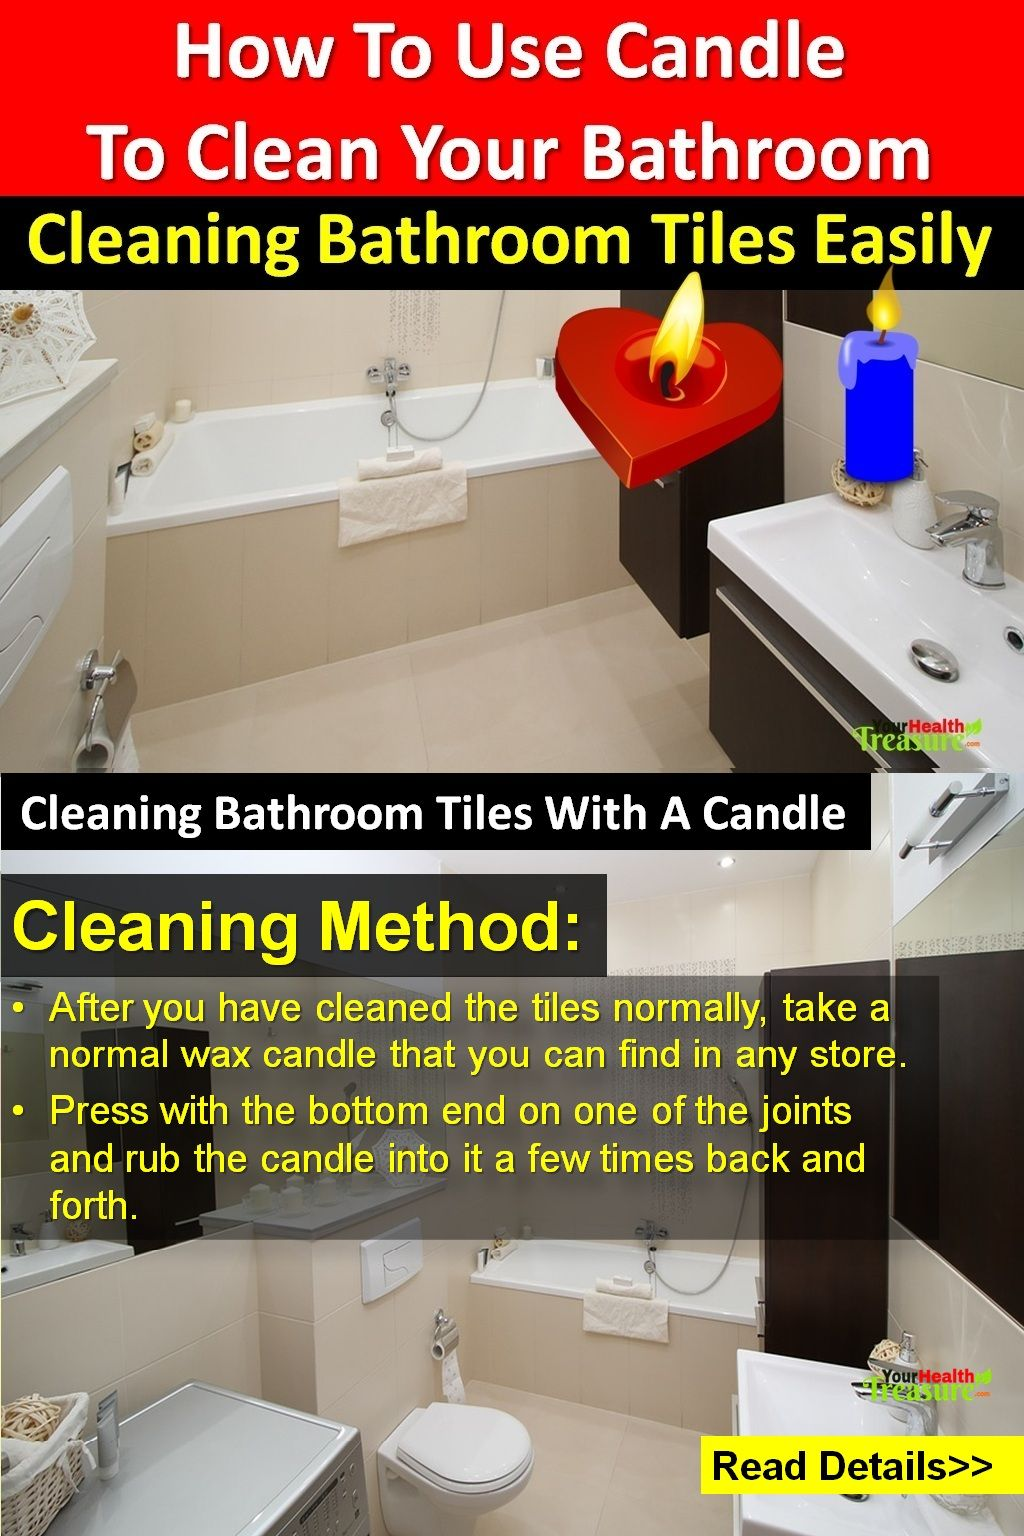 How To Clean Bathroom Tiles How to Use Candle to Clean Your